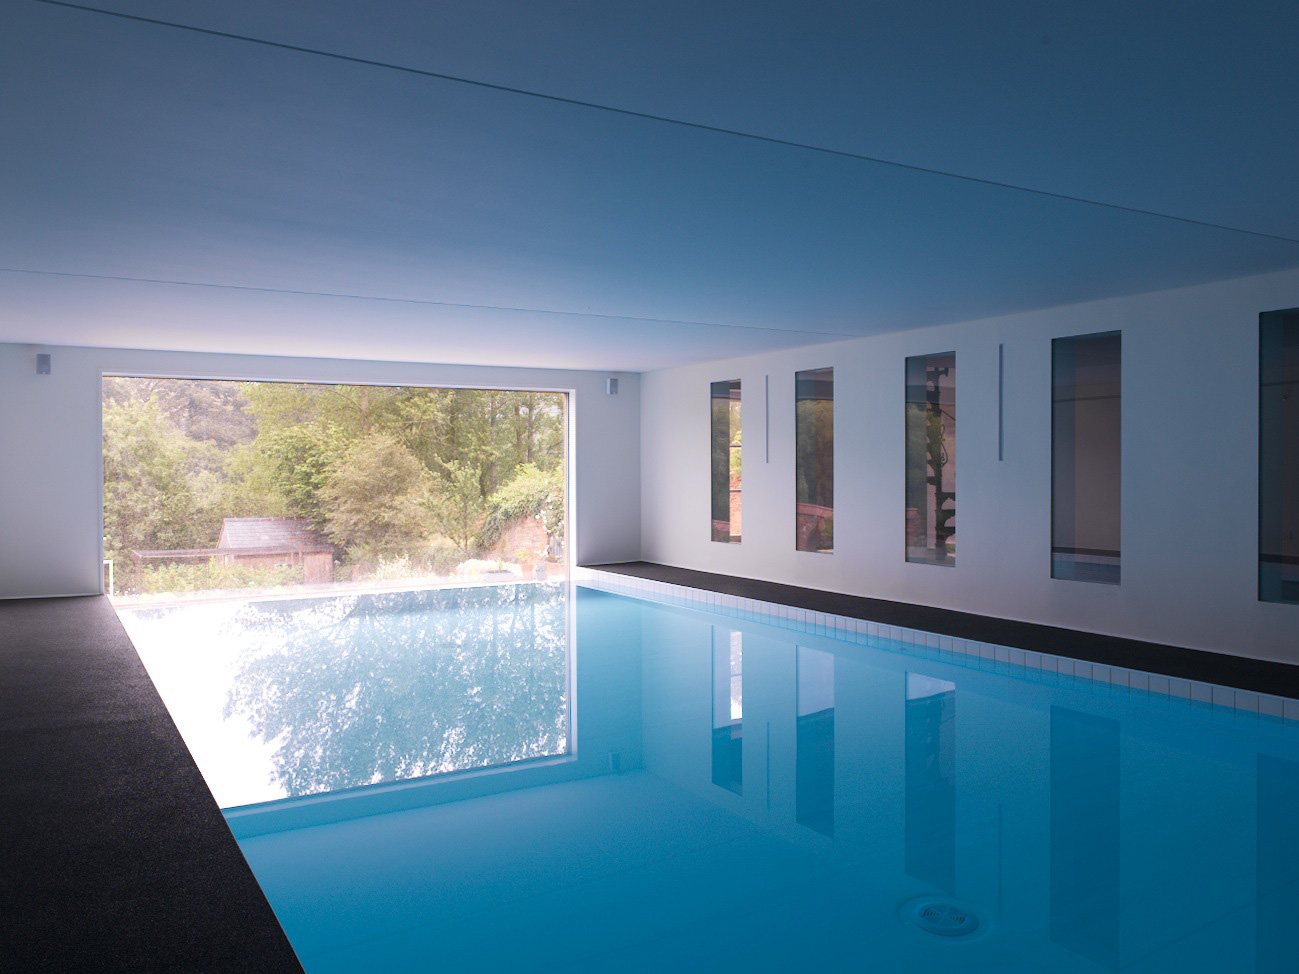 Studio MacLean Swimming Pools